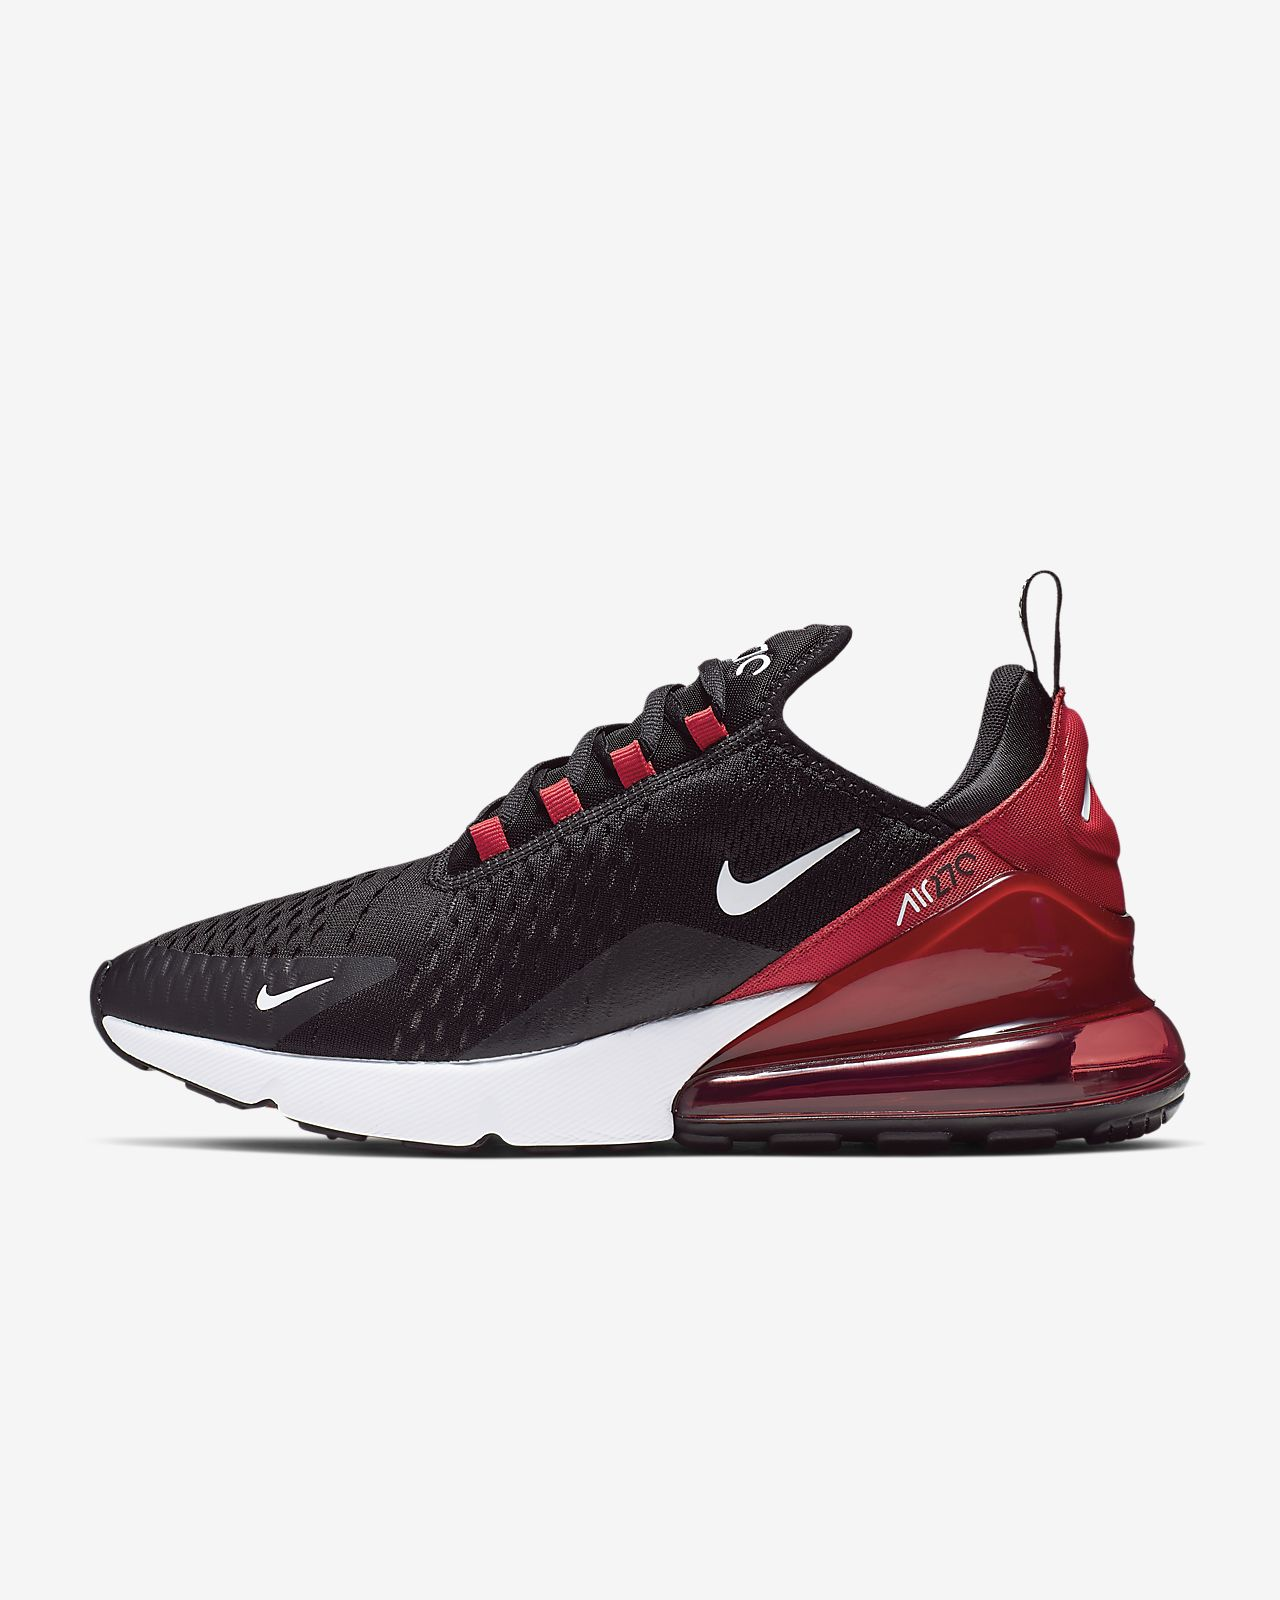 huge selection of 83b7e d7142 ... Sko Nike Air Max 270 för män